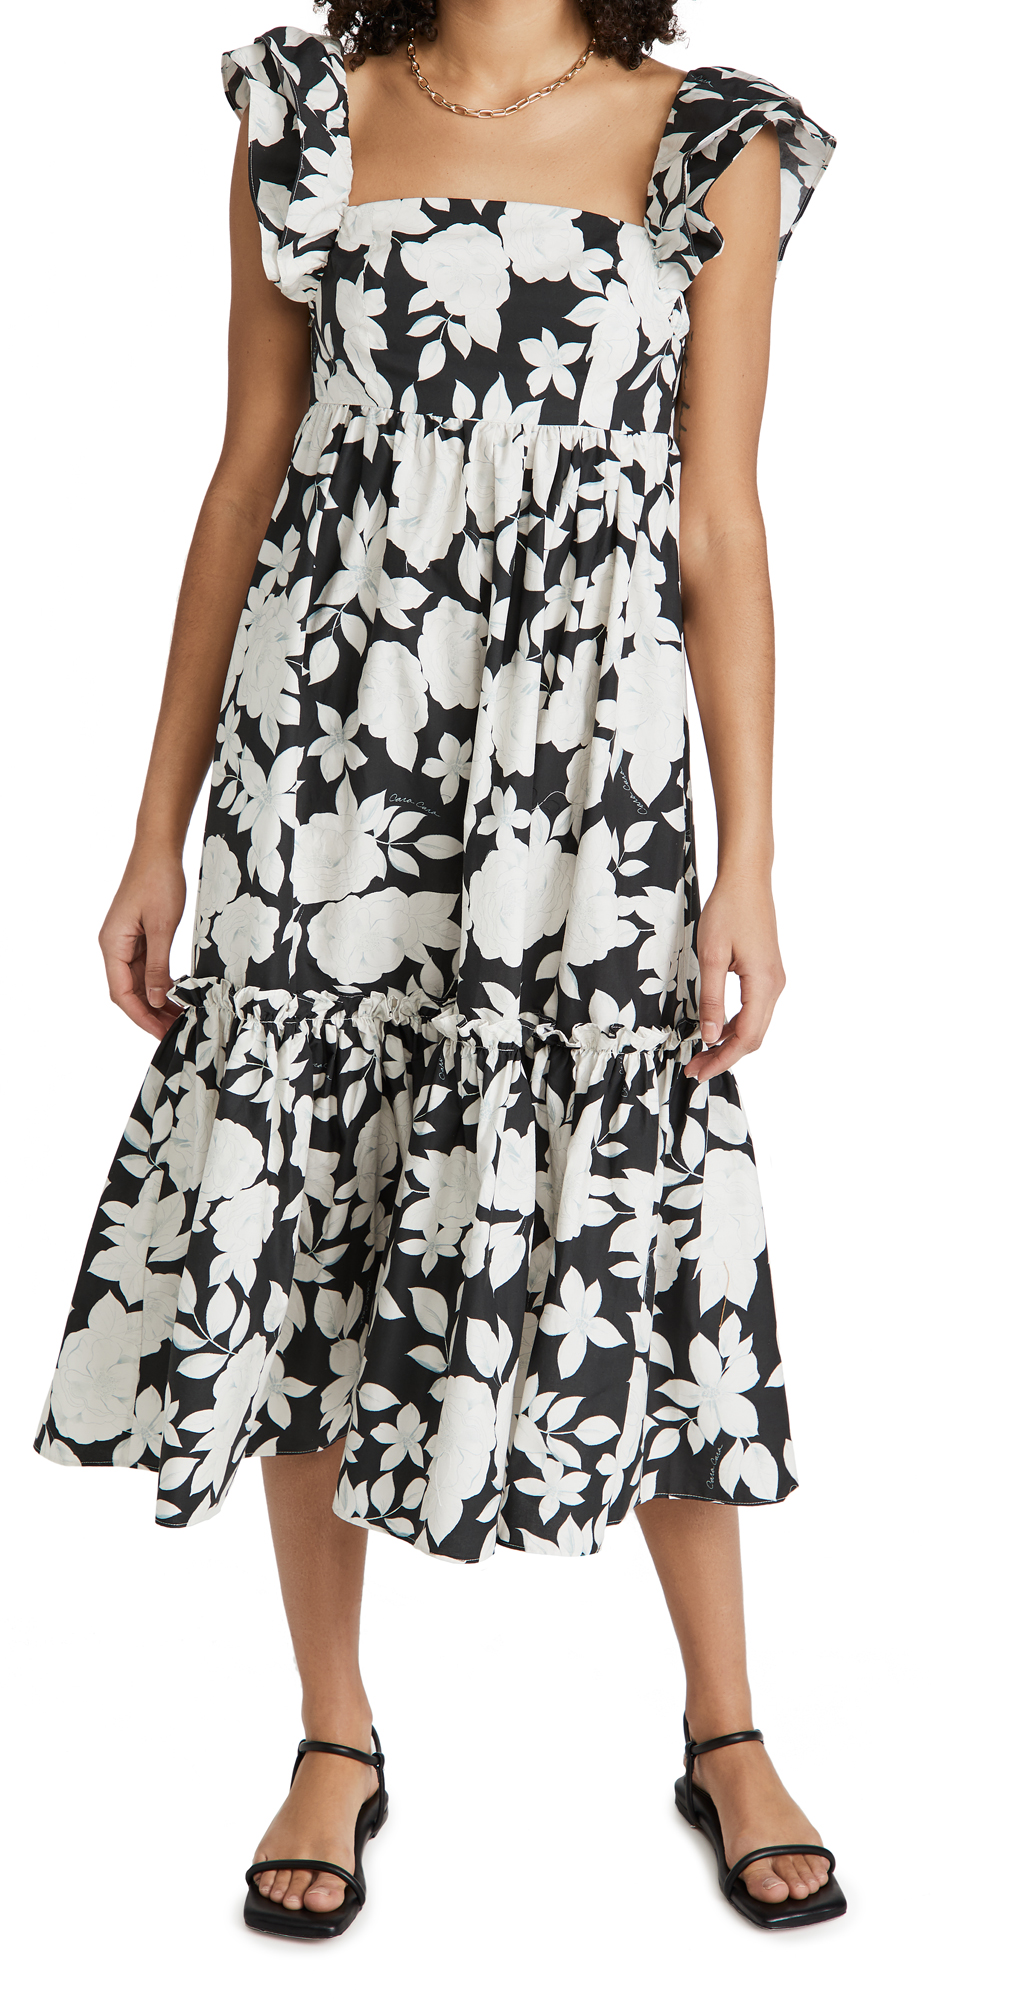 Cara Cara Darby Dress